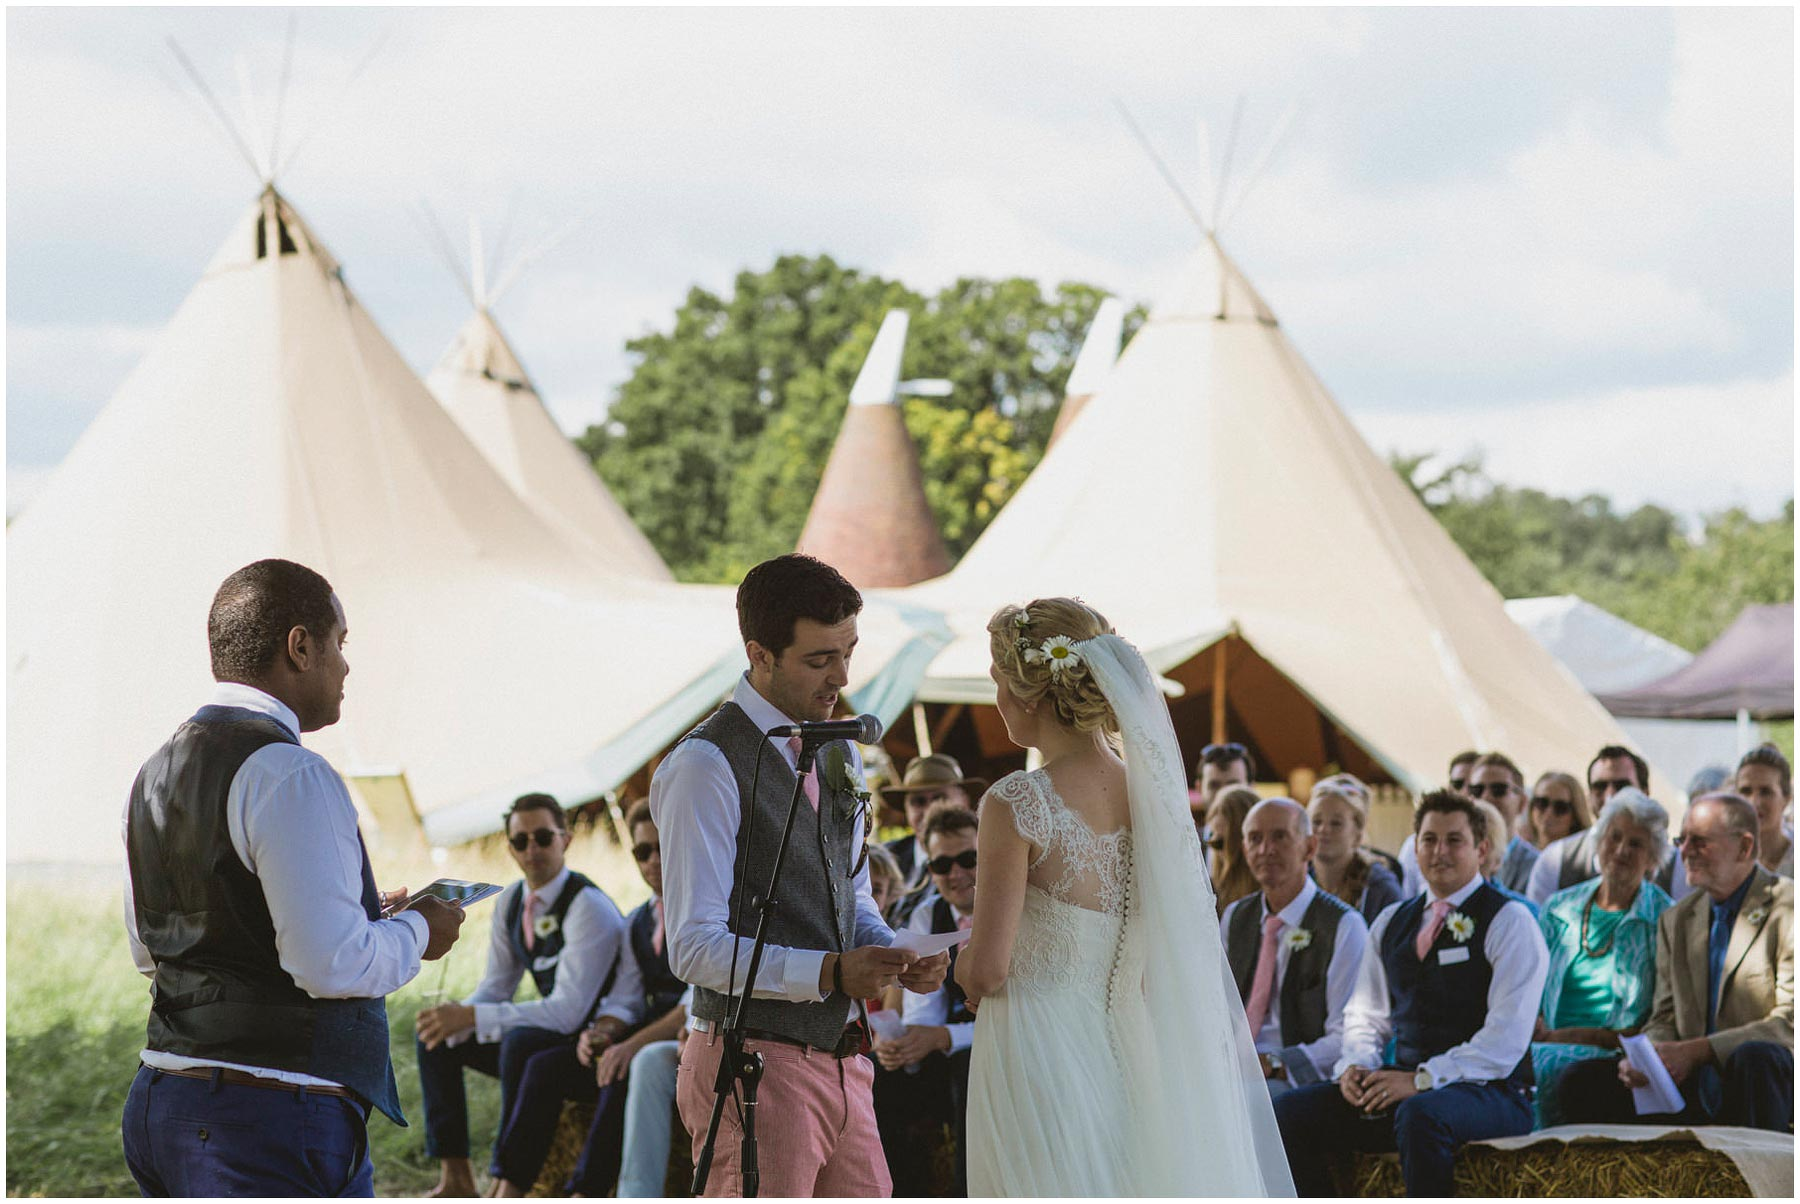 Kent-Festival-Tipi-wedding-photography_0067